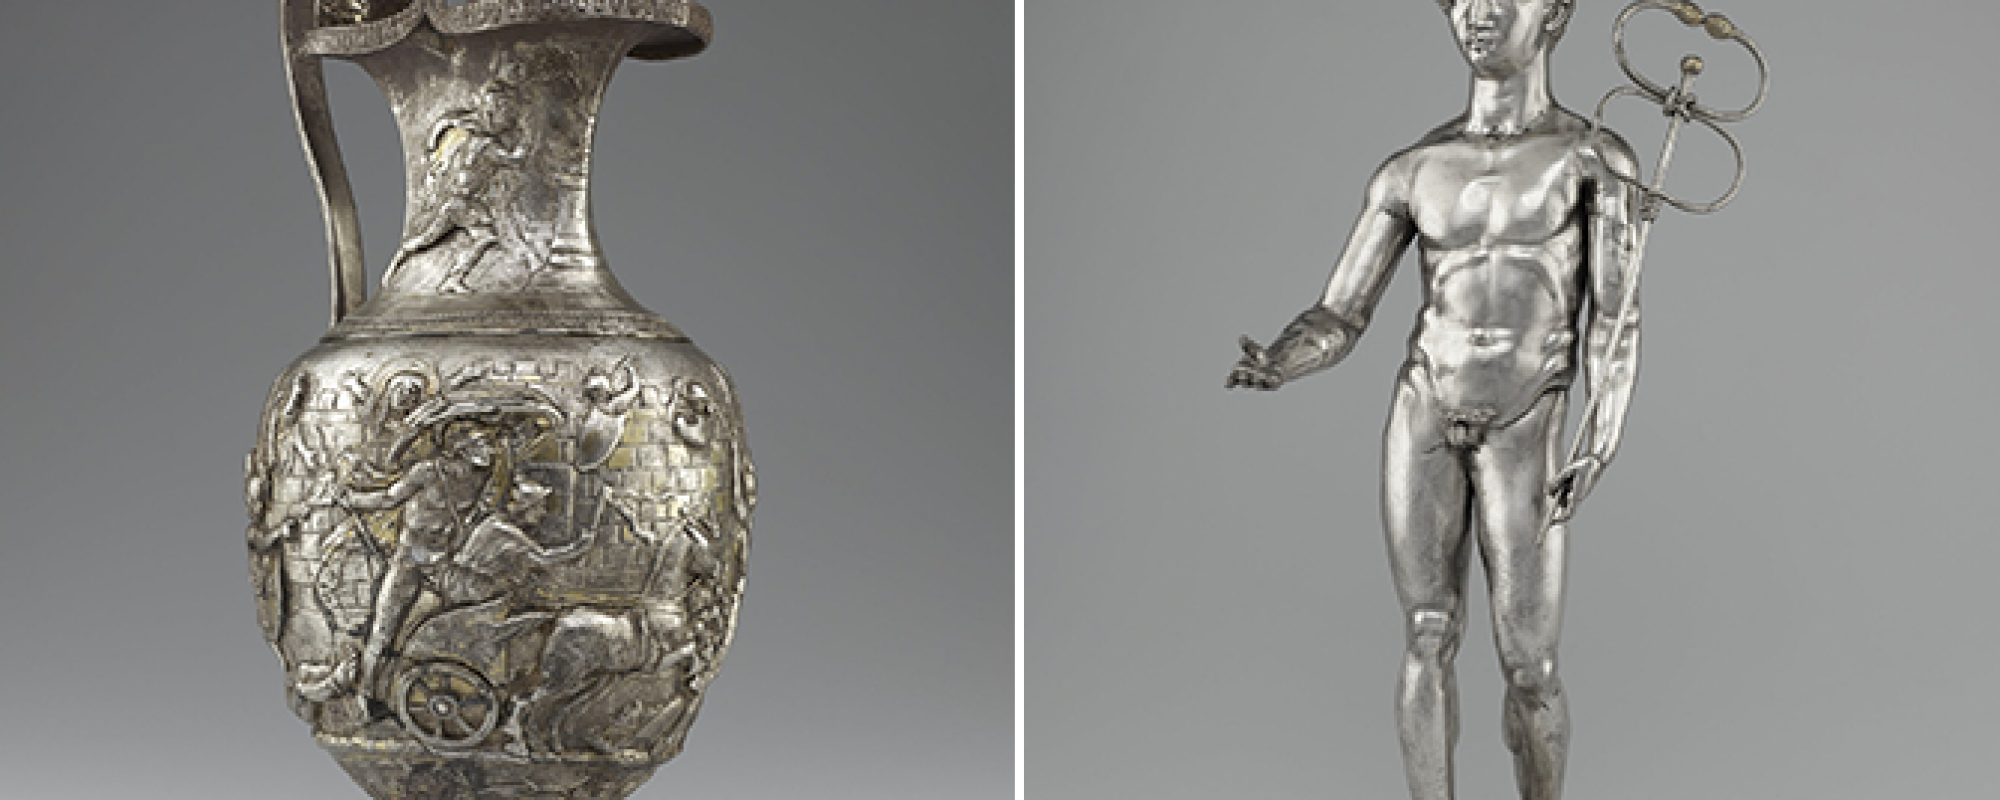 Pitcher with Scenes from the Trojan War / Mercury